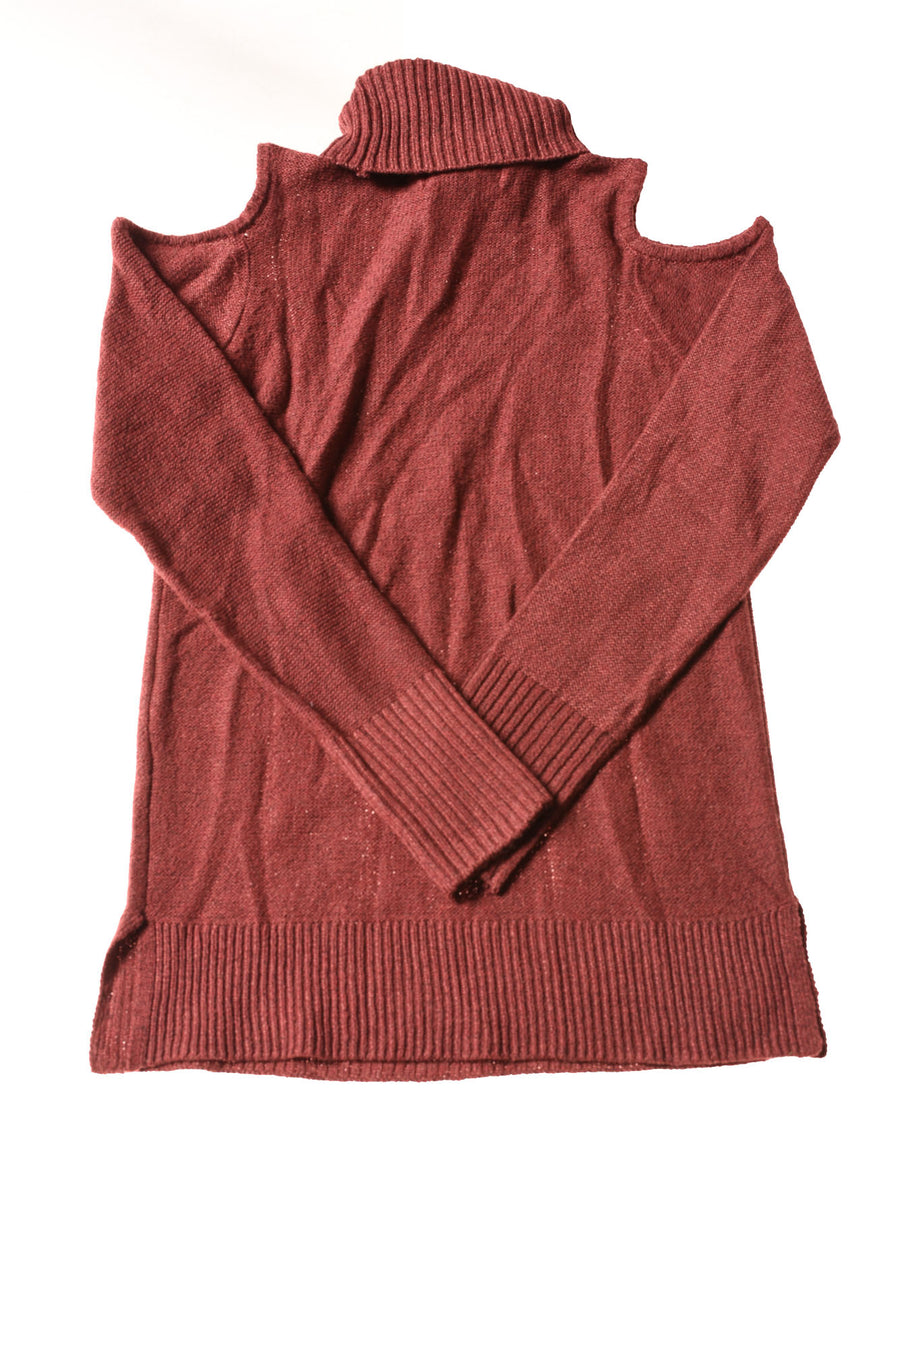 NEW Pink Rose Women's Sweater Small Cranberry